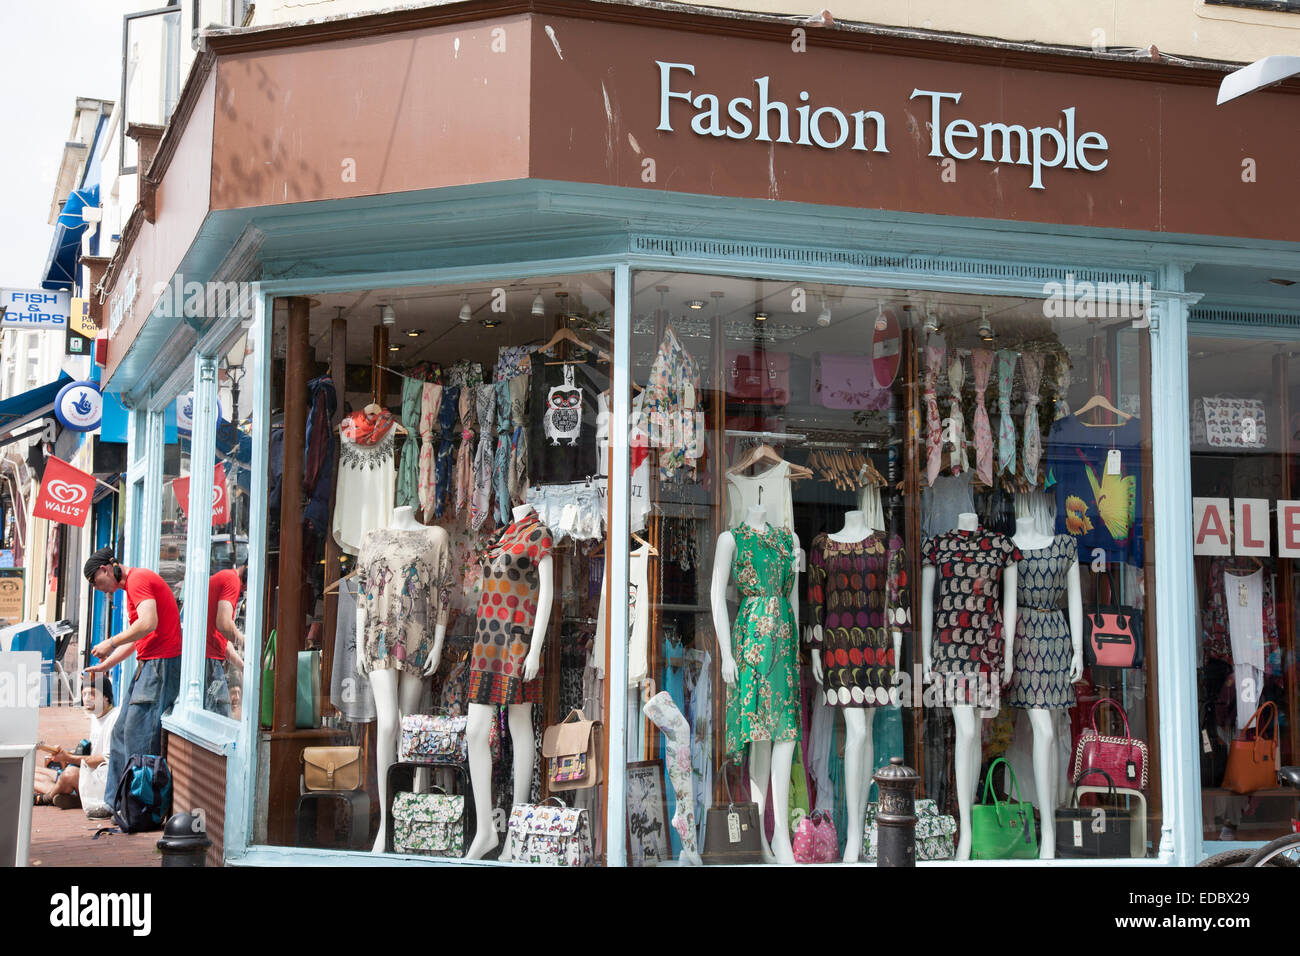 Temple clothing stores